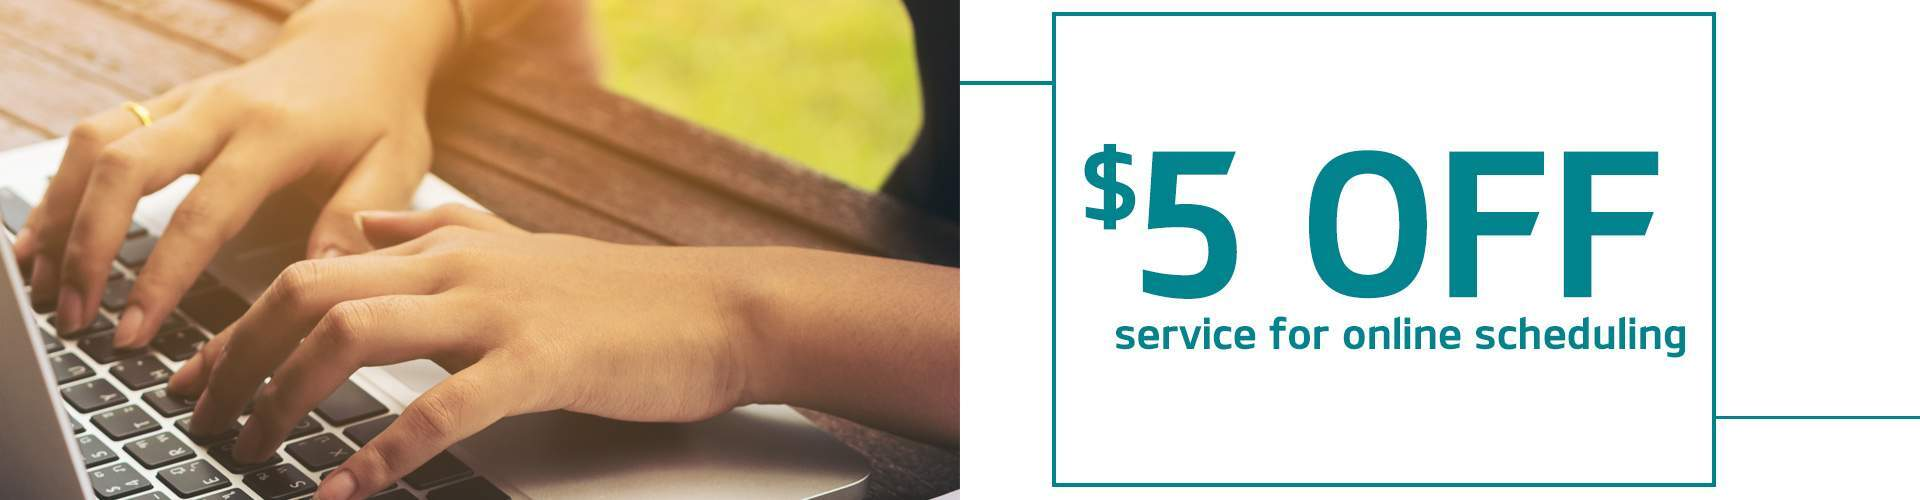 $5 Off Service for Online Scheduling